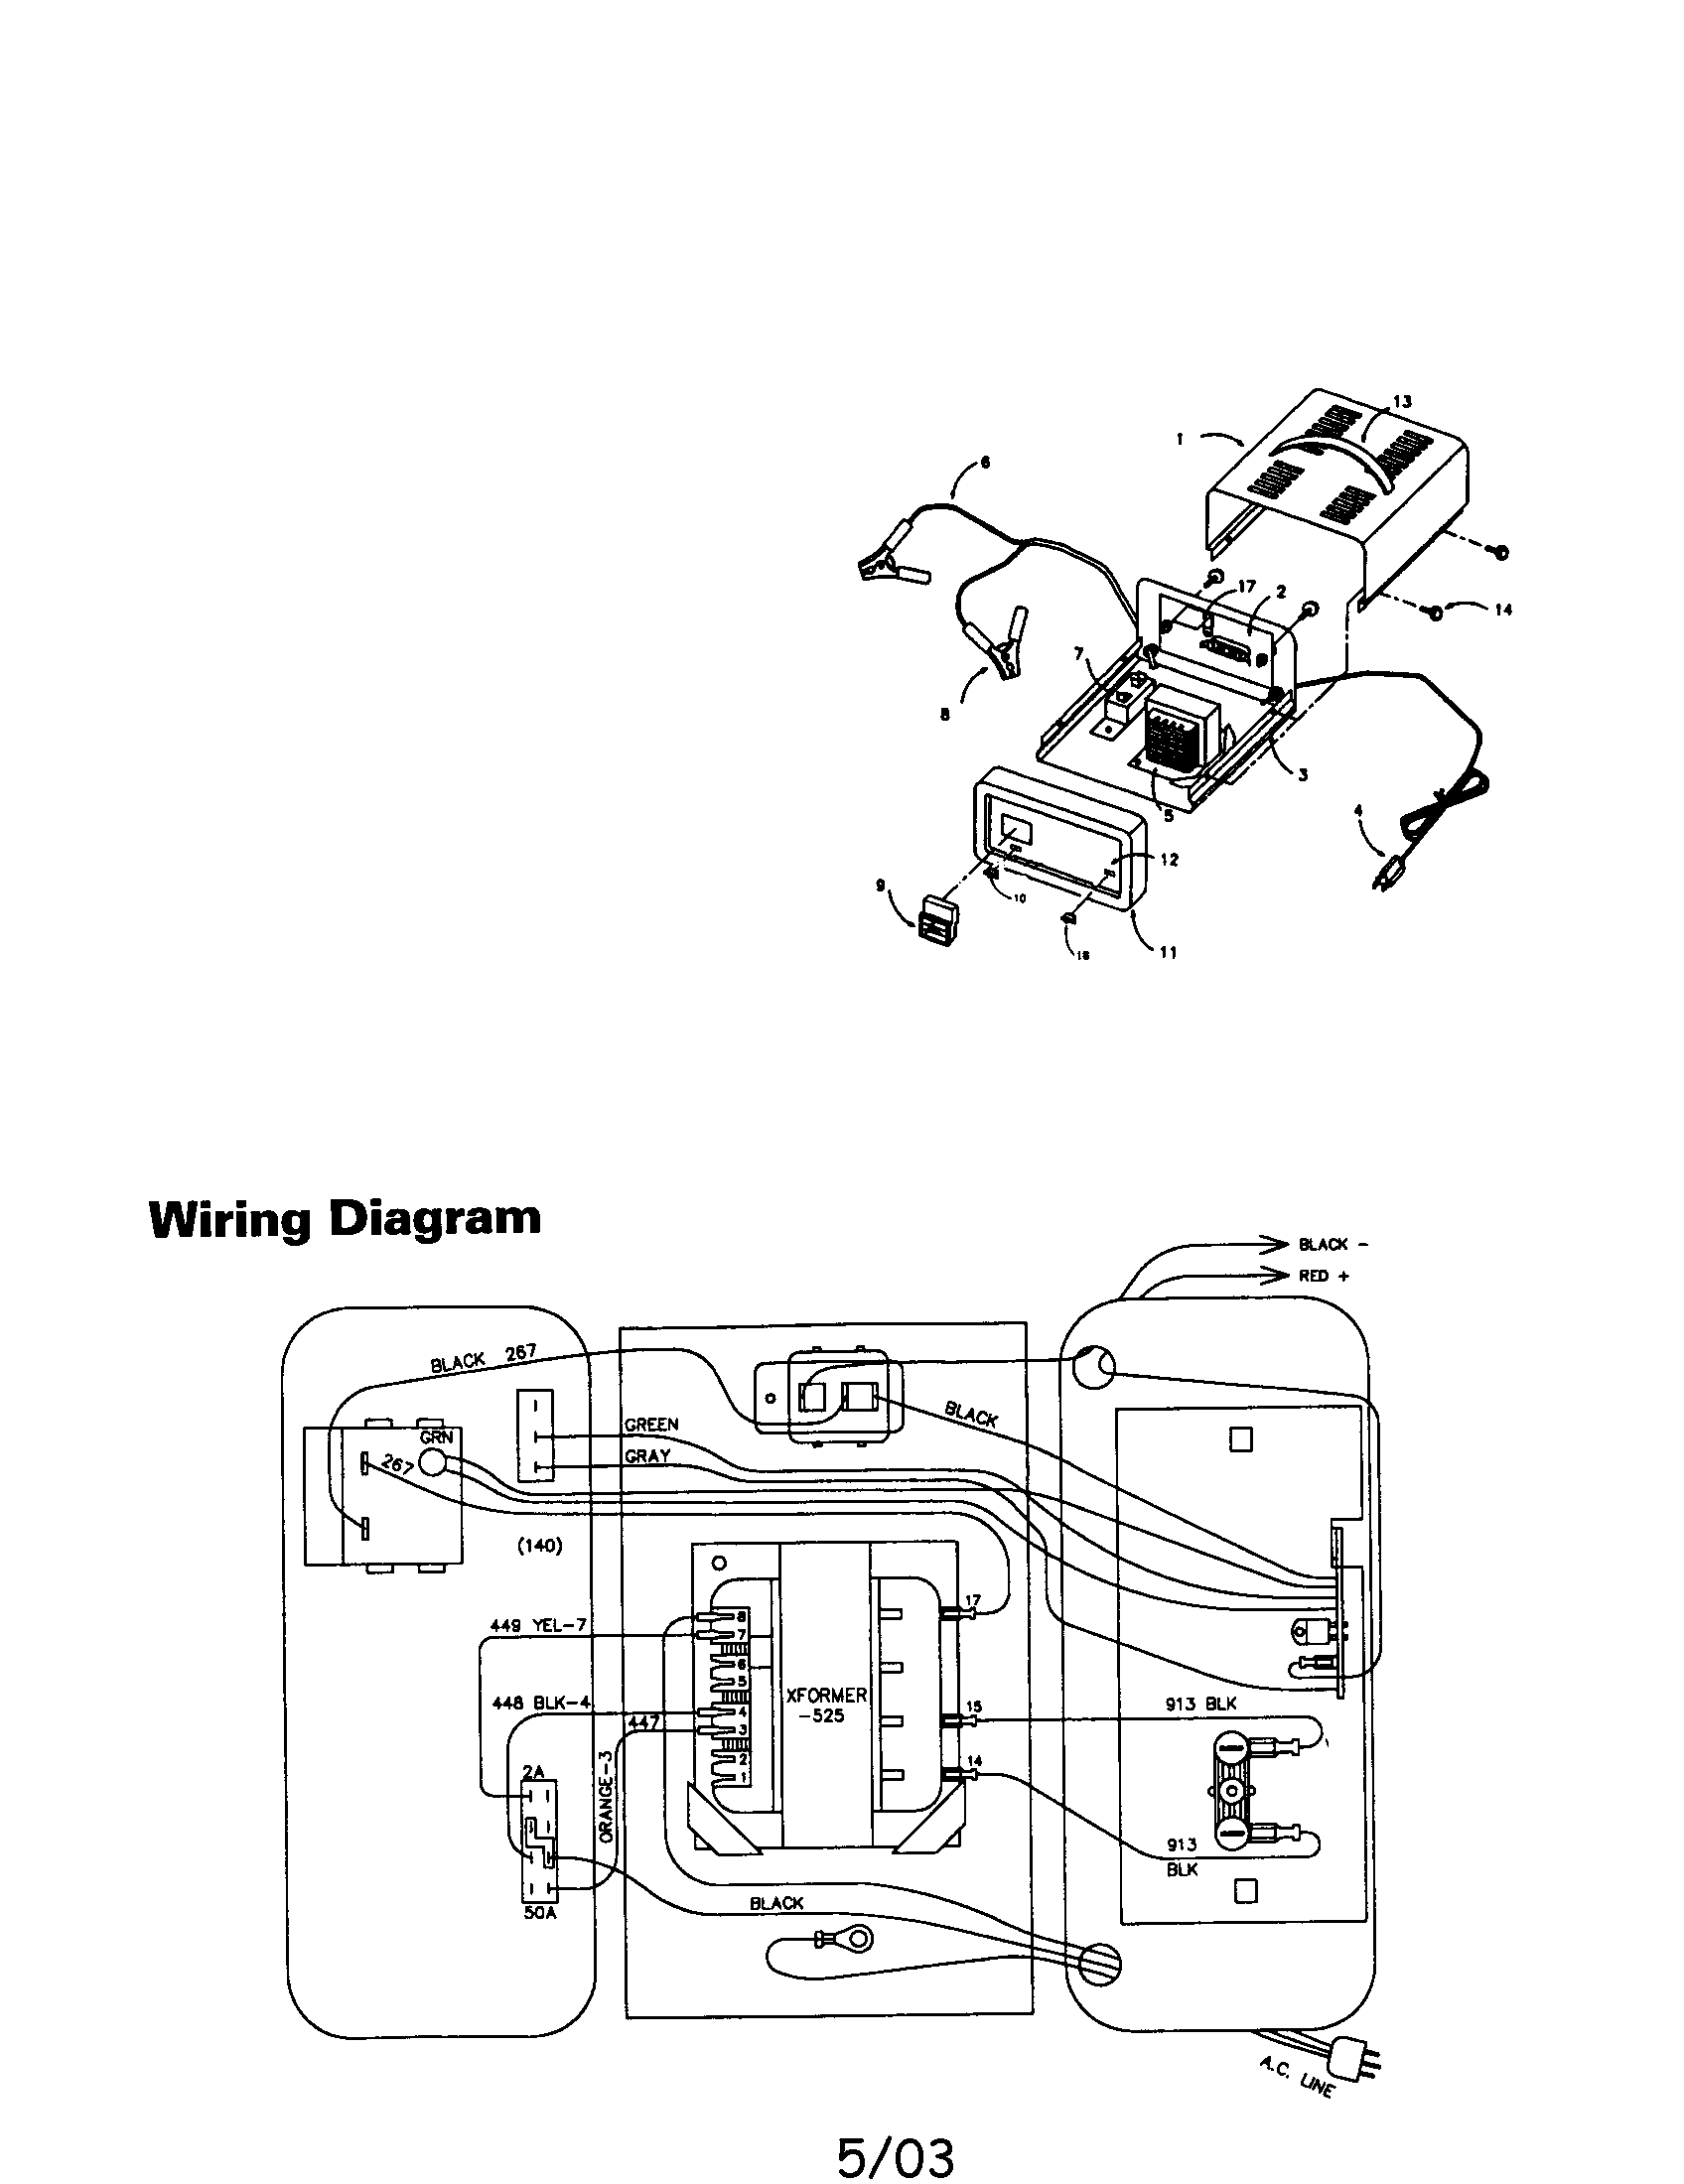 Hard Battery Charger Model 200 Wiring Diagram